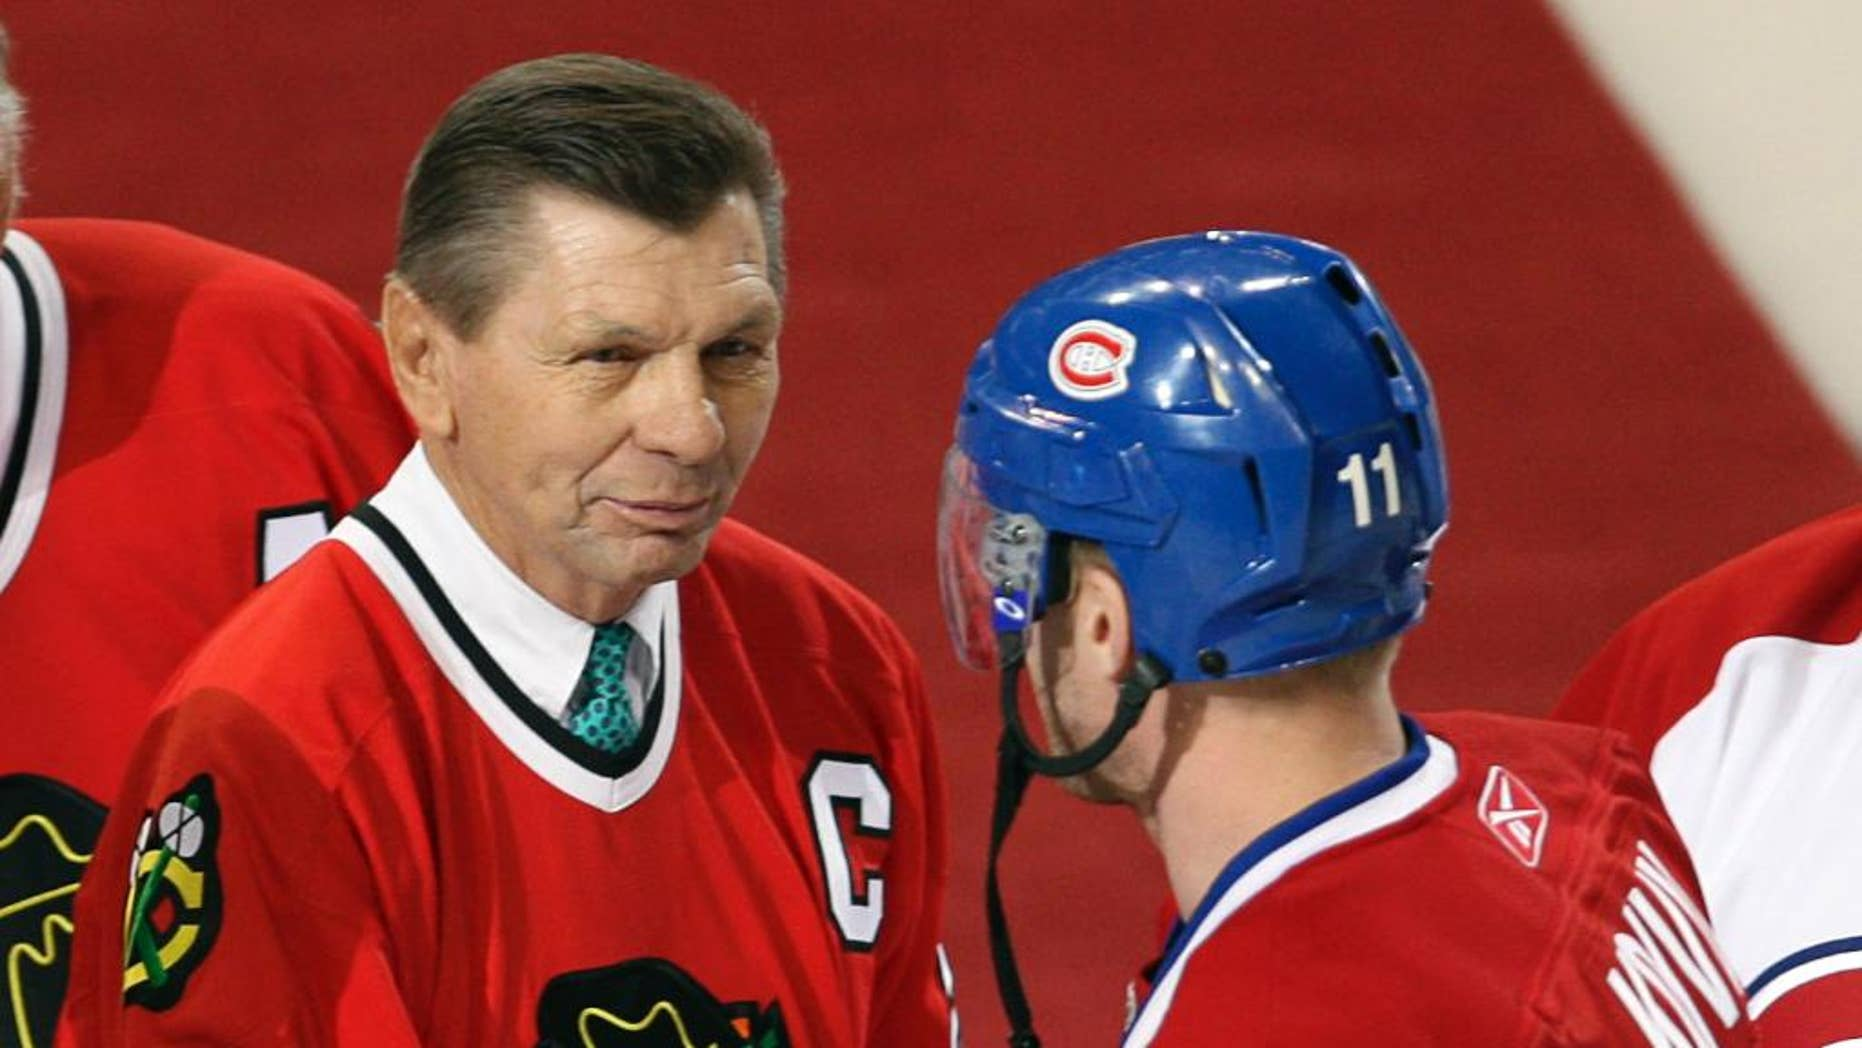 """FILE - In this Jan. 8, 2008, file photo, Montreal Canadiens captain Saku Koivu (11) talks with Chicago Blackhawks great Stan Mikita during a pregame ceremony in Montreal. Mikita's family says the Blackhawks Hall of Famer has been diagnosed with a suspected brain disorder, adding that the 74-year-old is """"facing some serious health issues"""" and has suspected Lewy body dementia. (AP Photo/The Canadian Press, Paul Chiasson, File)"""